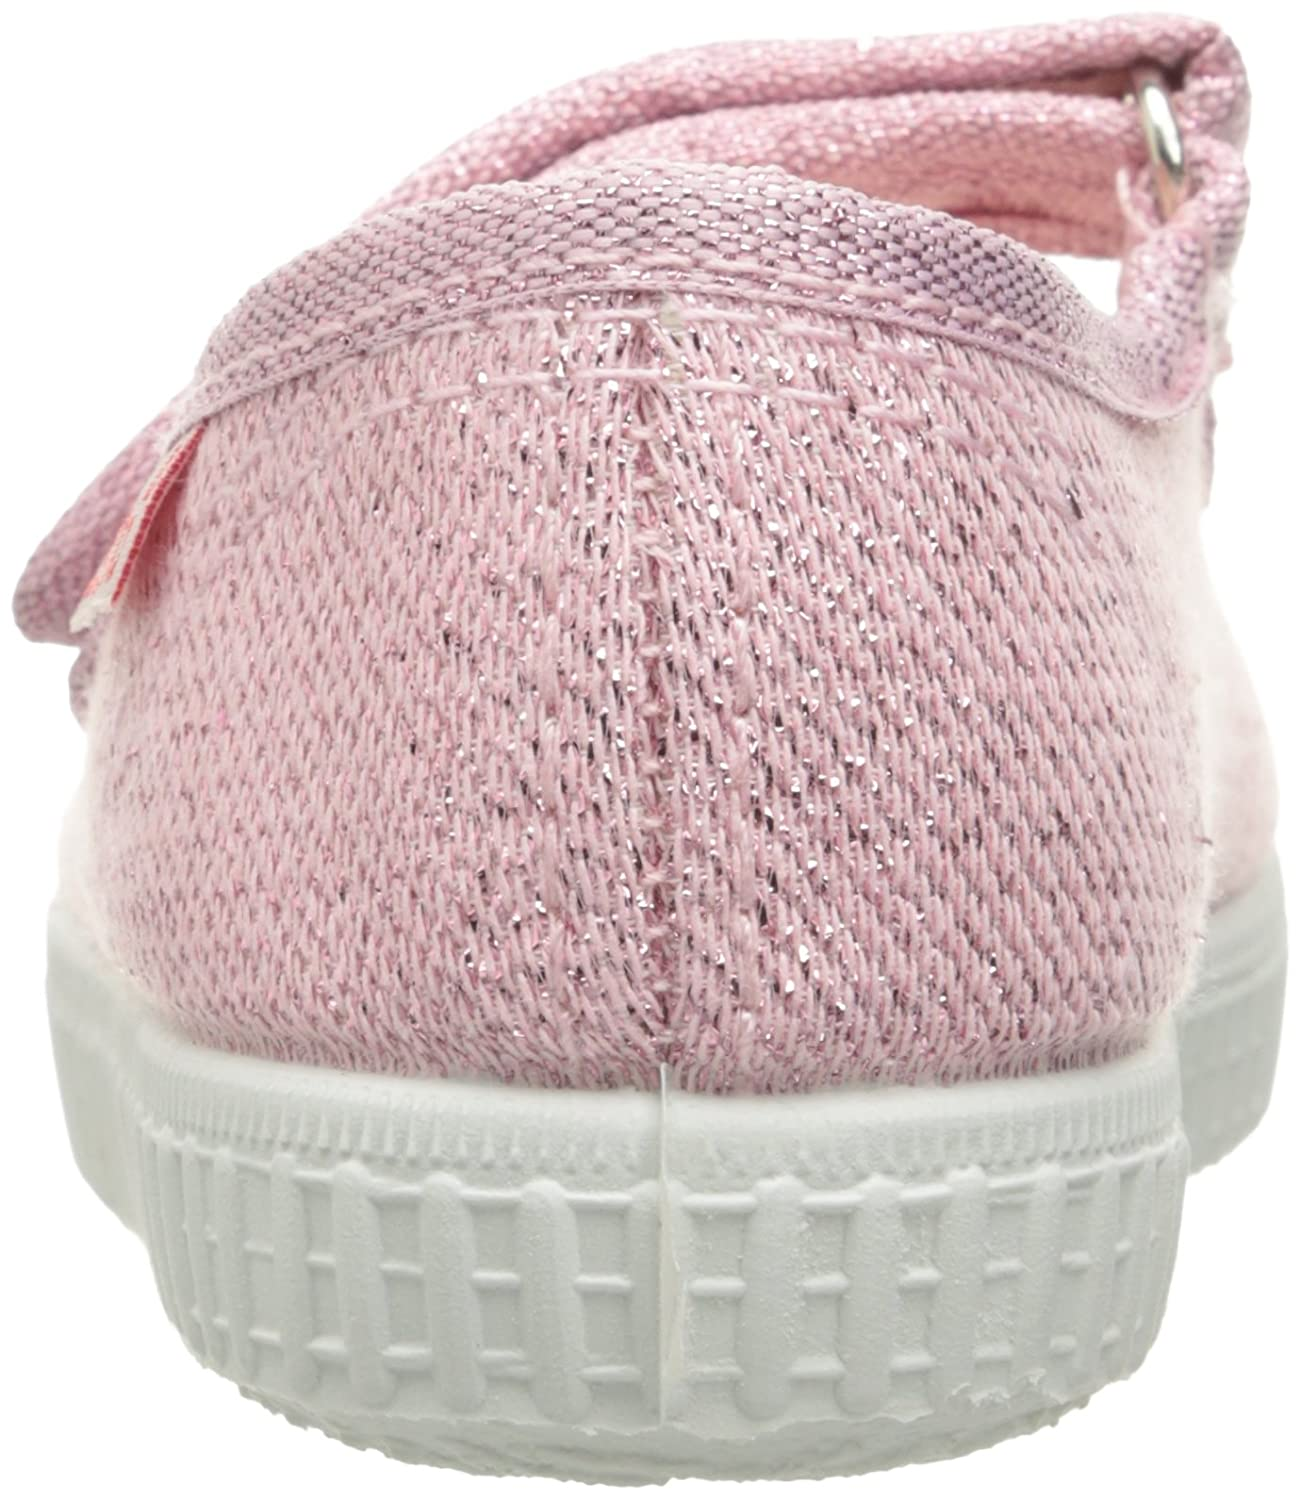 Cienta Kids Shoes Footwear 56013 Cienta Mary Jane Sneakers for Girls – Casual Shoes with Adjustable Strap, Infant//Toddler//Little Kid K